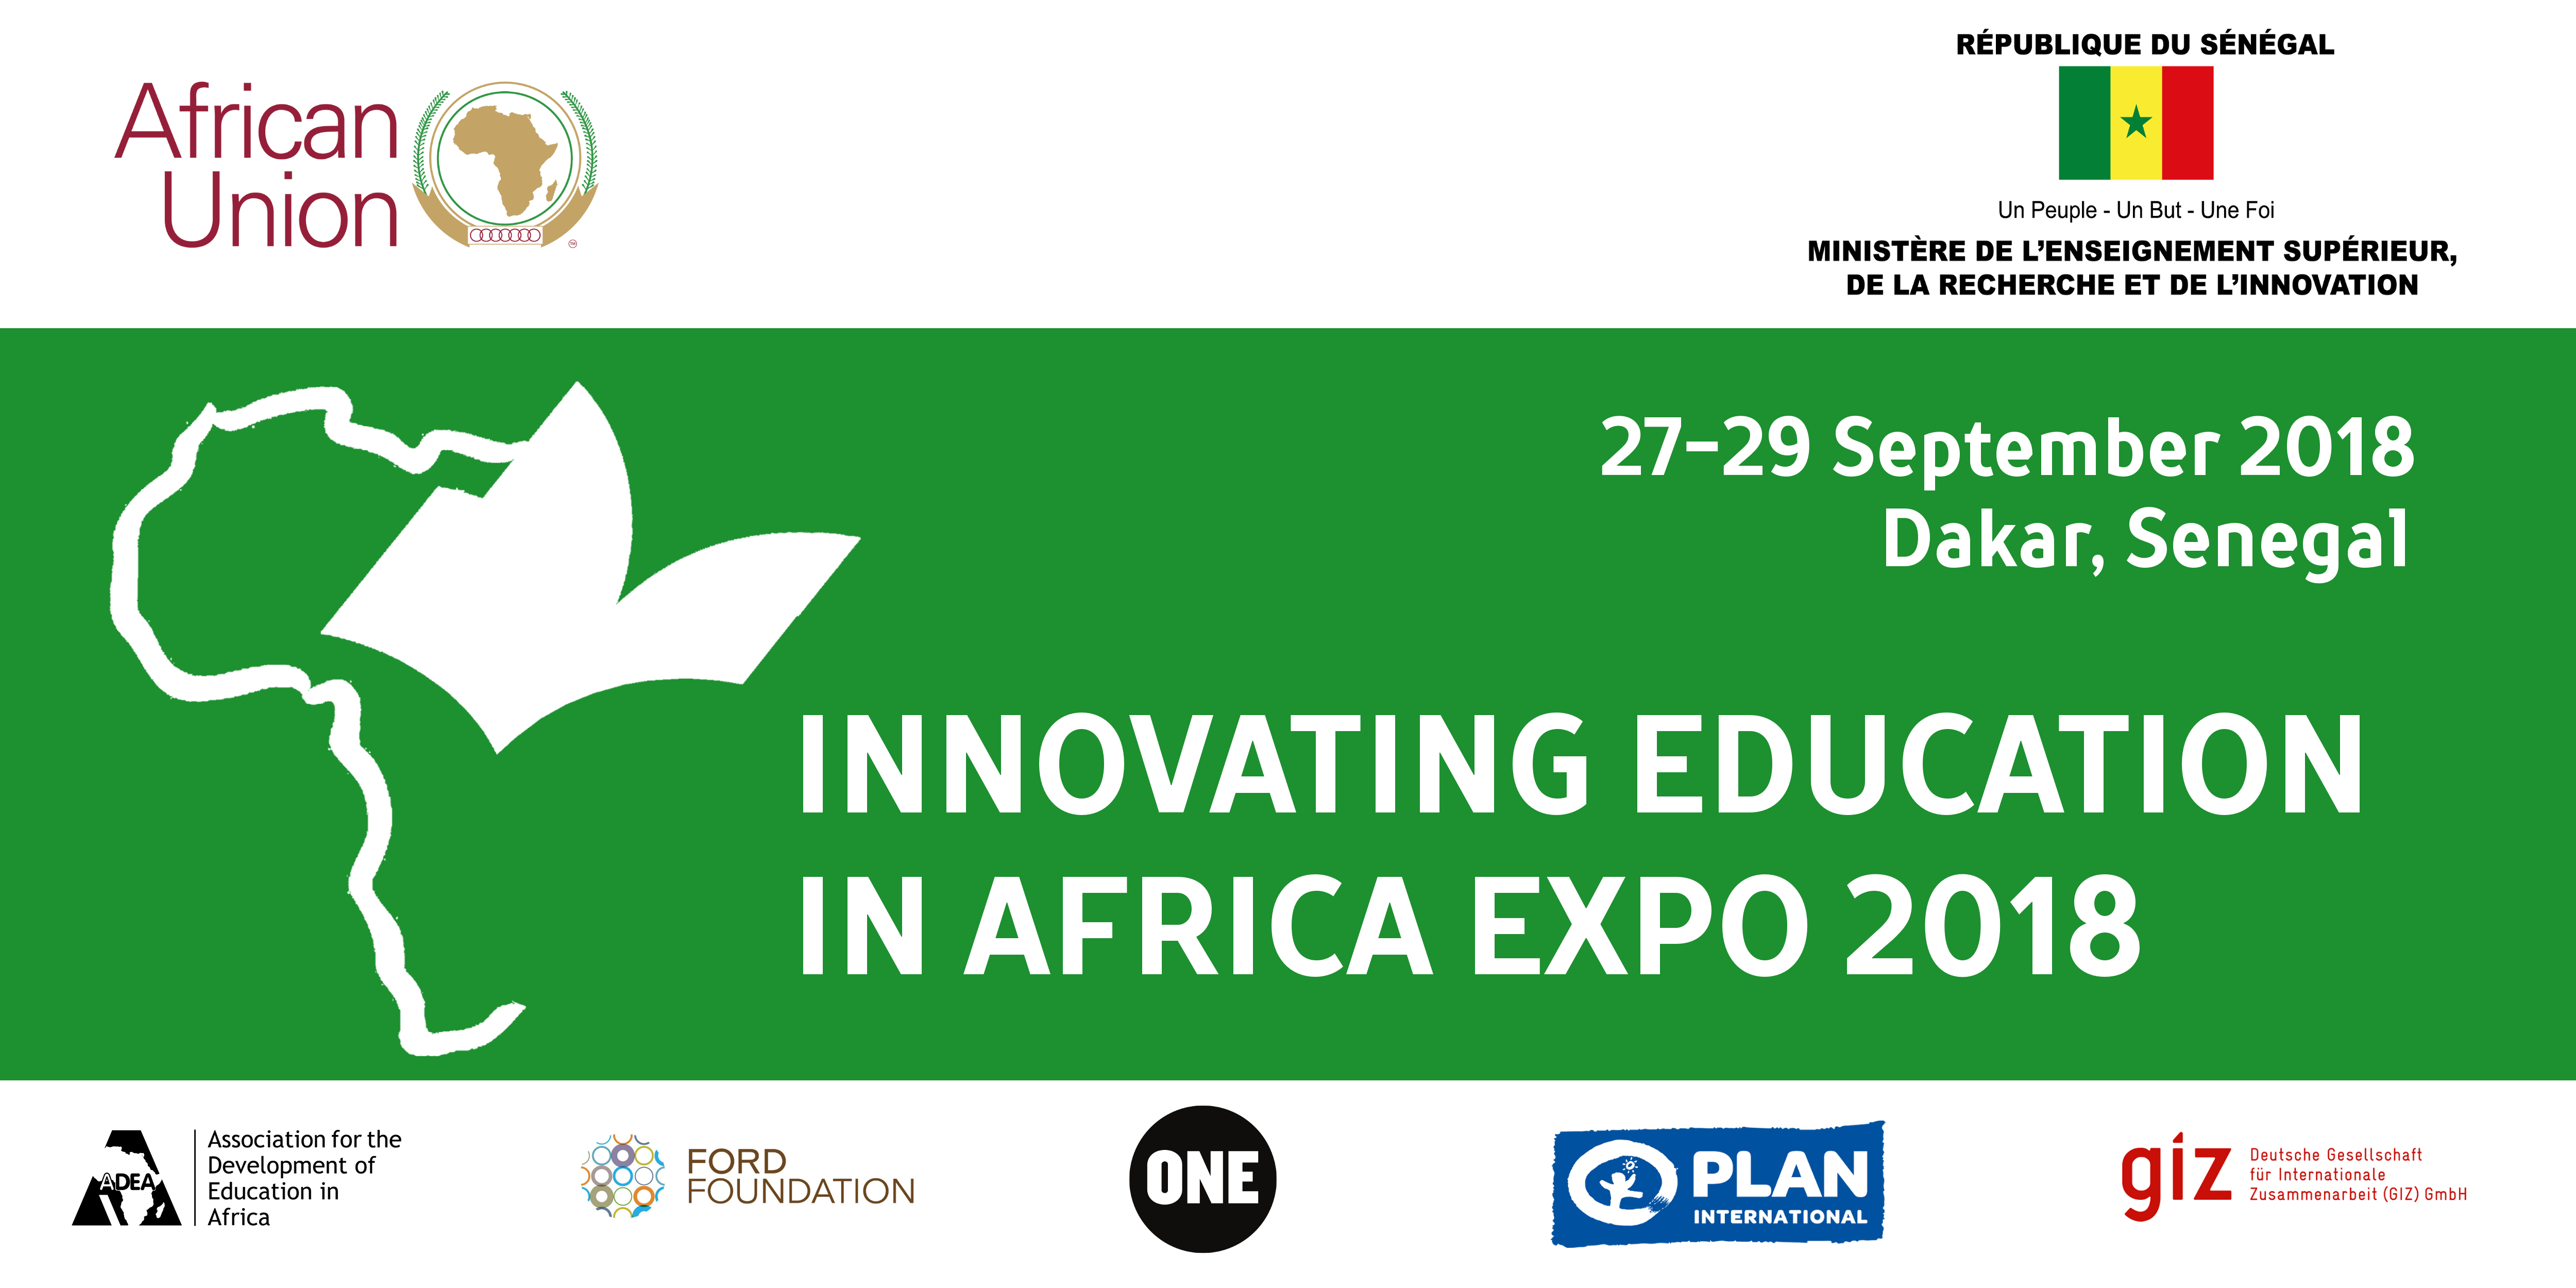 Innovating Education in Africa Expo: Call for submissions extended to 15 July